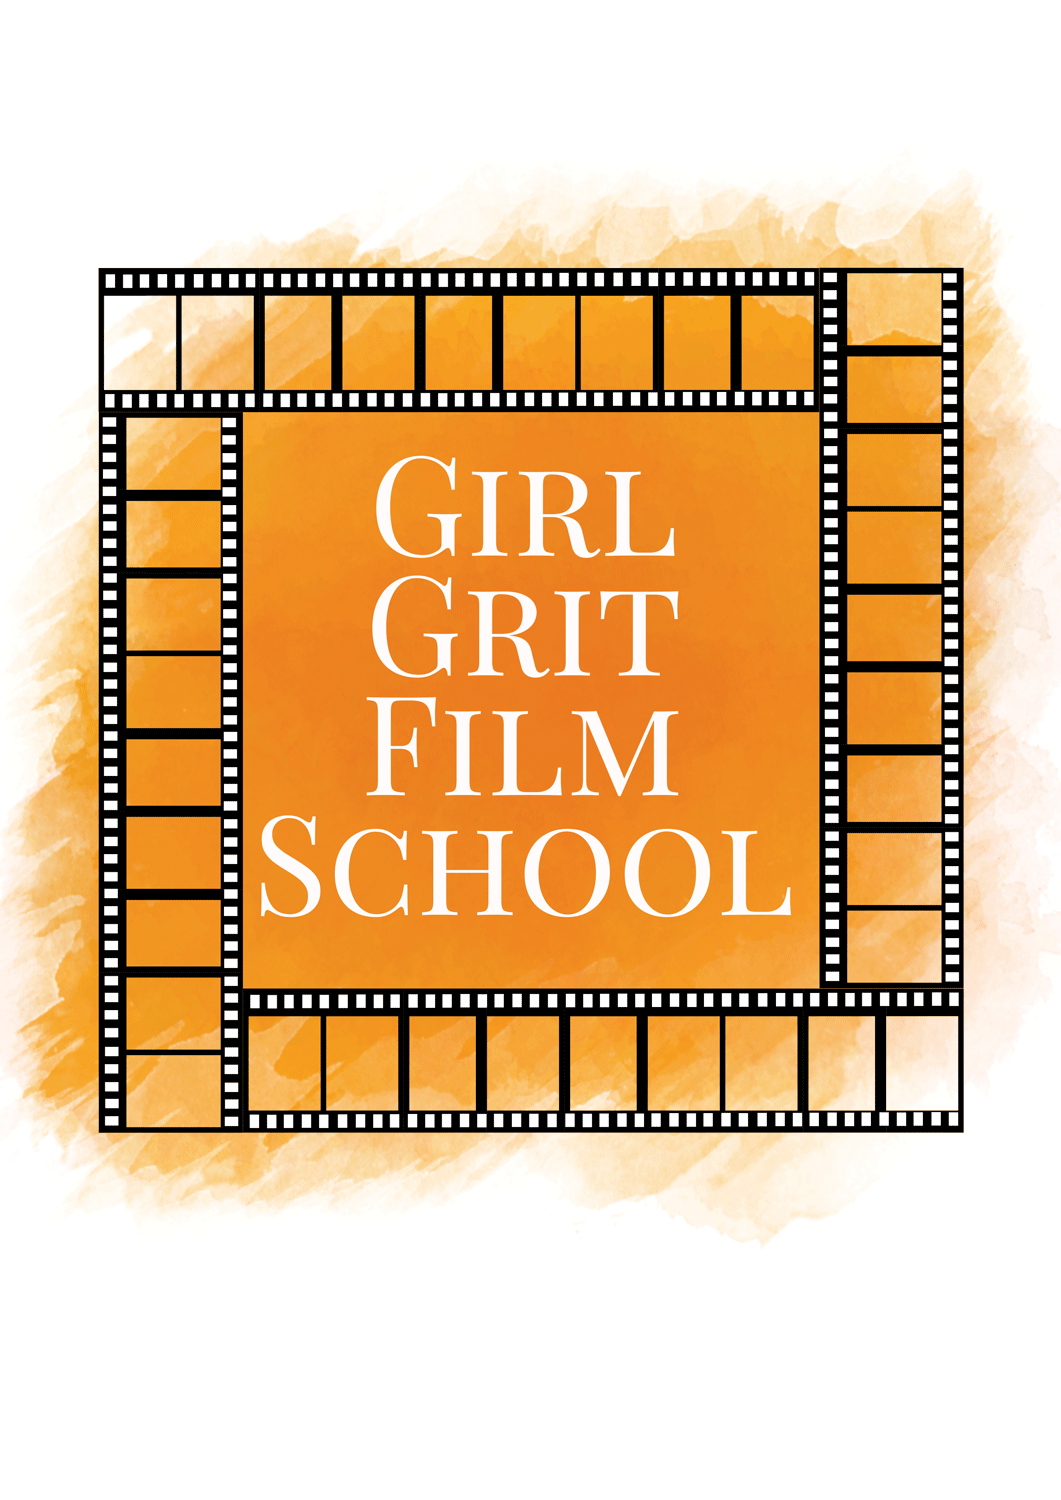 Girl-Grit-Film-School